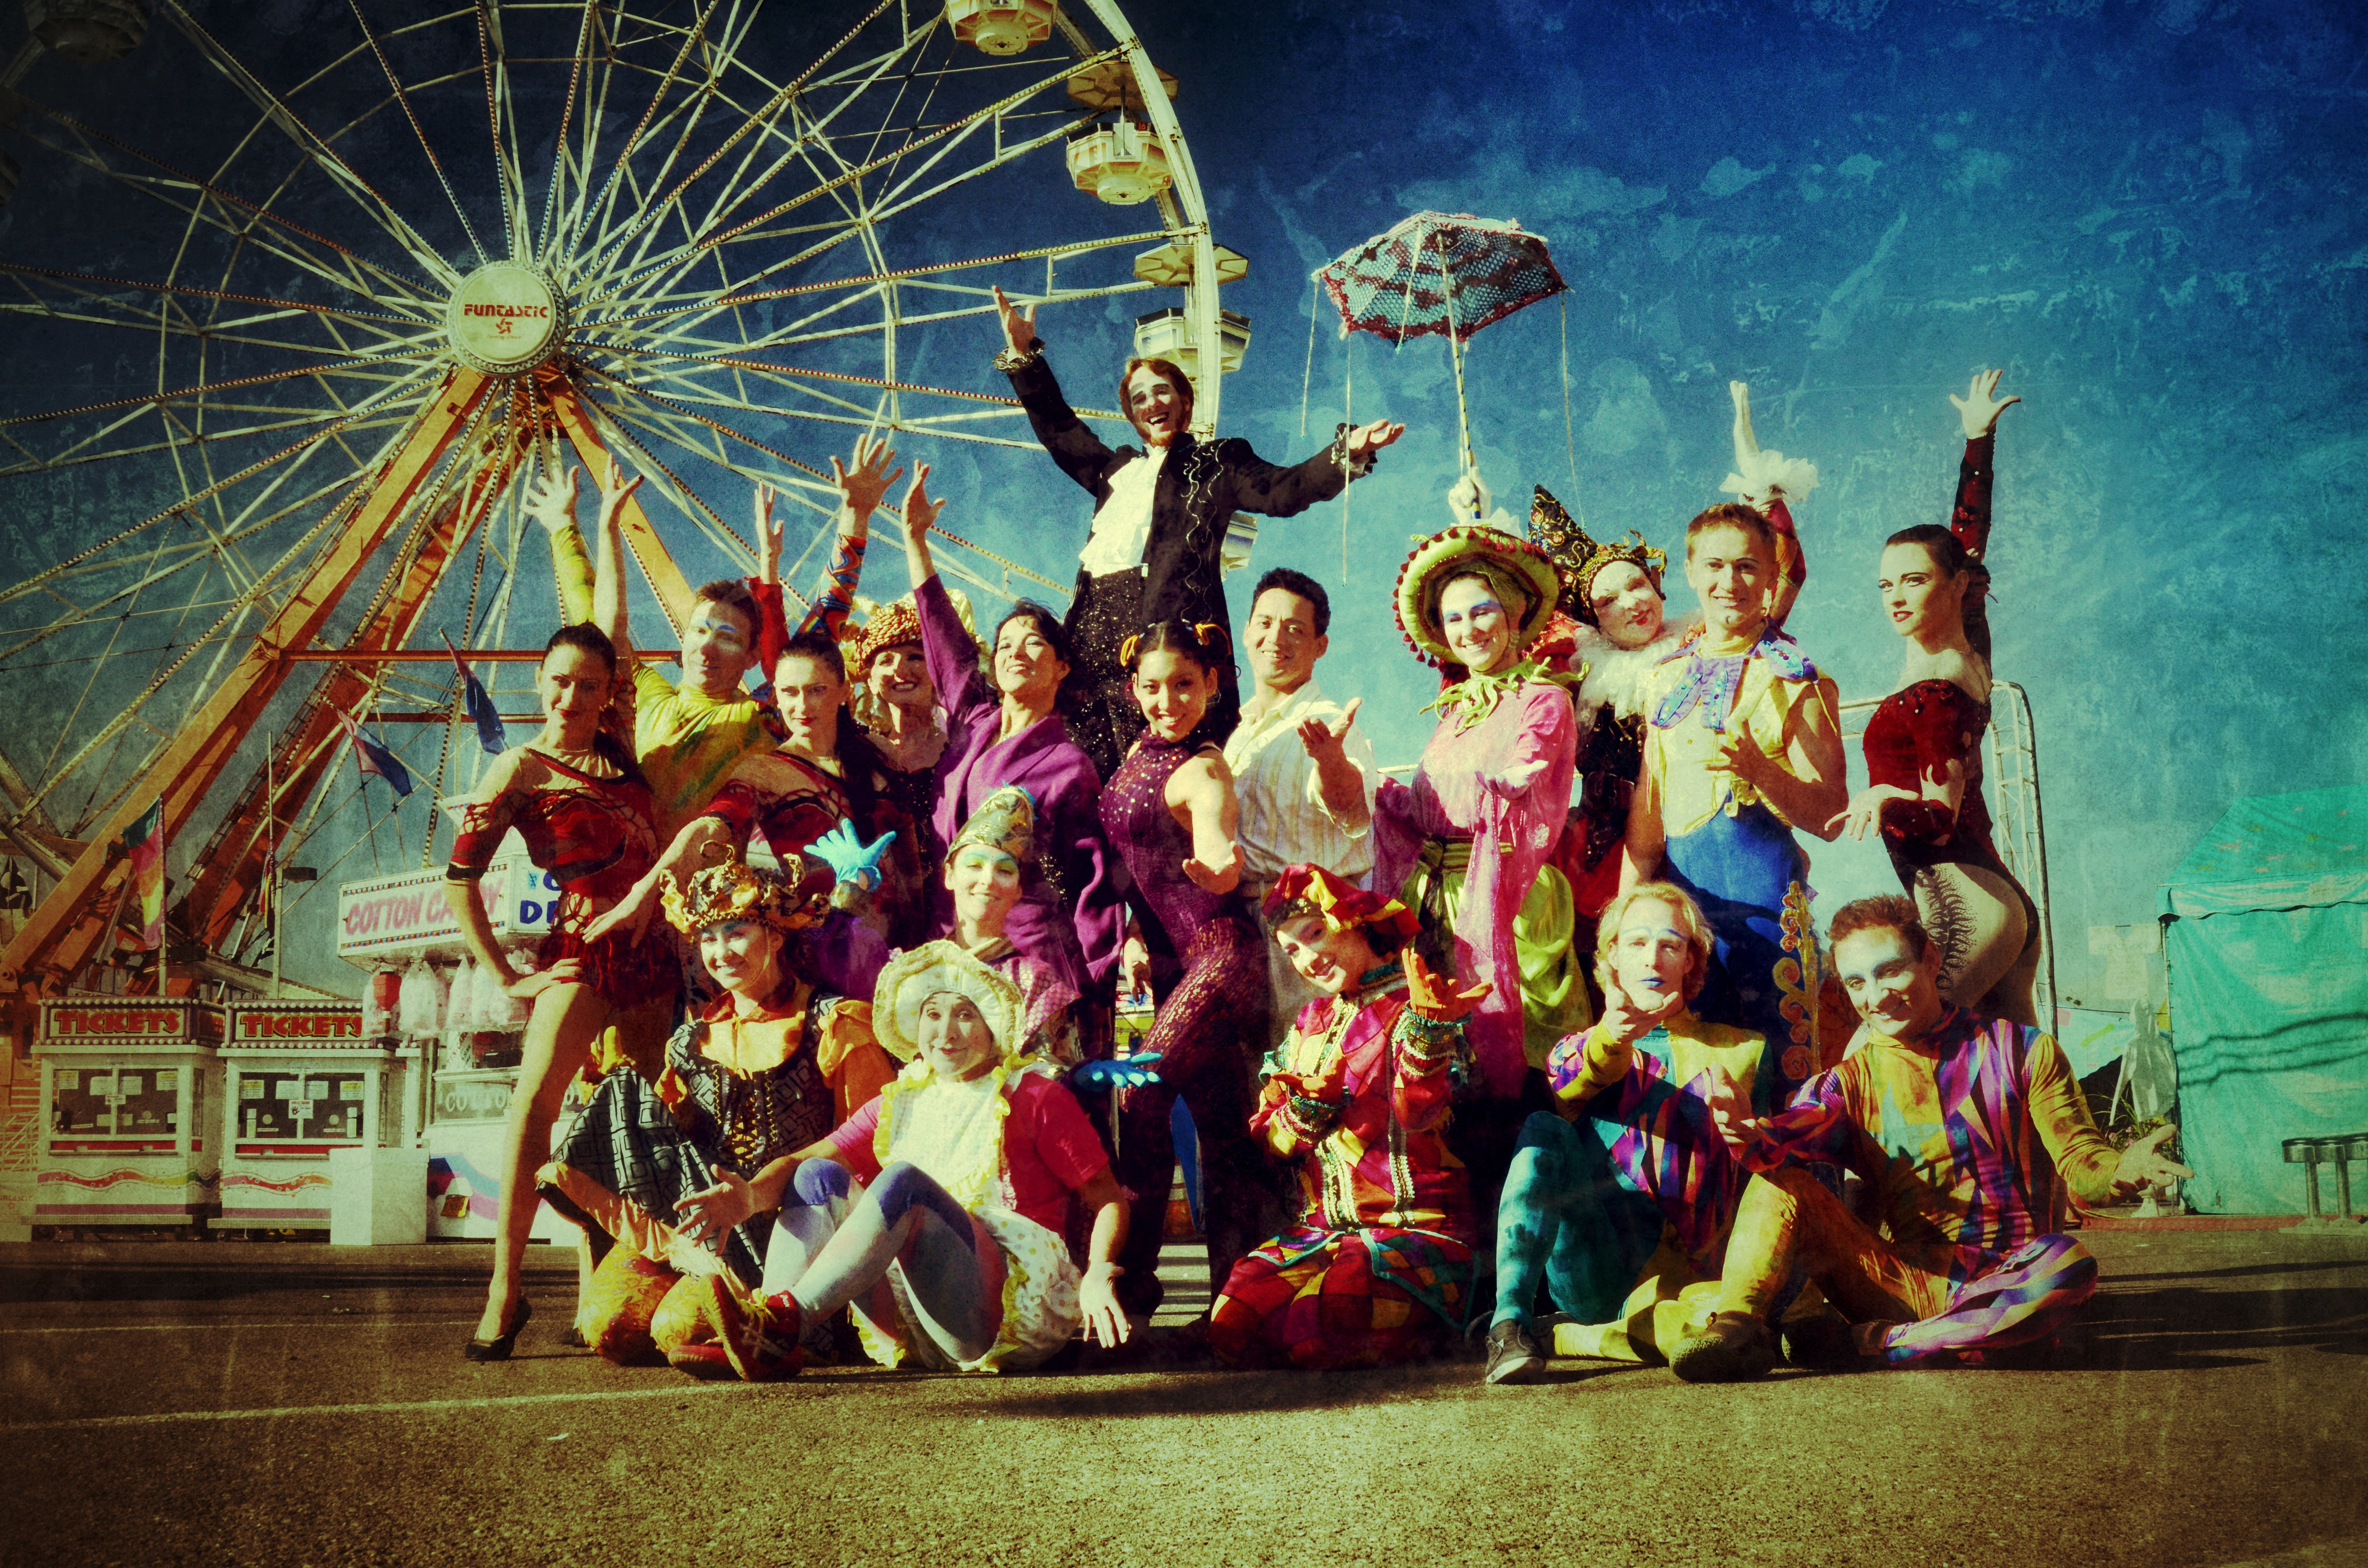 Fairs, Festivals and Amusement Parks